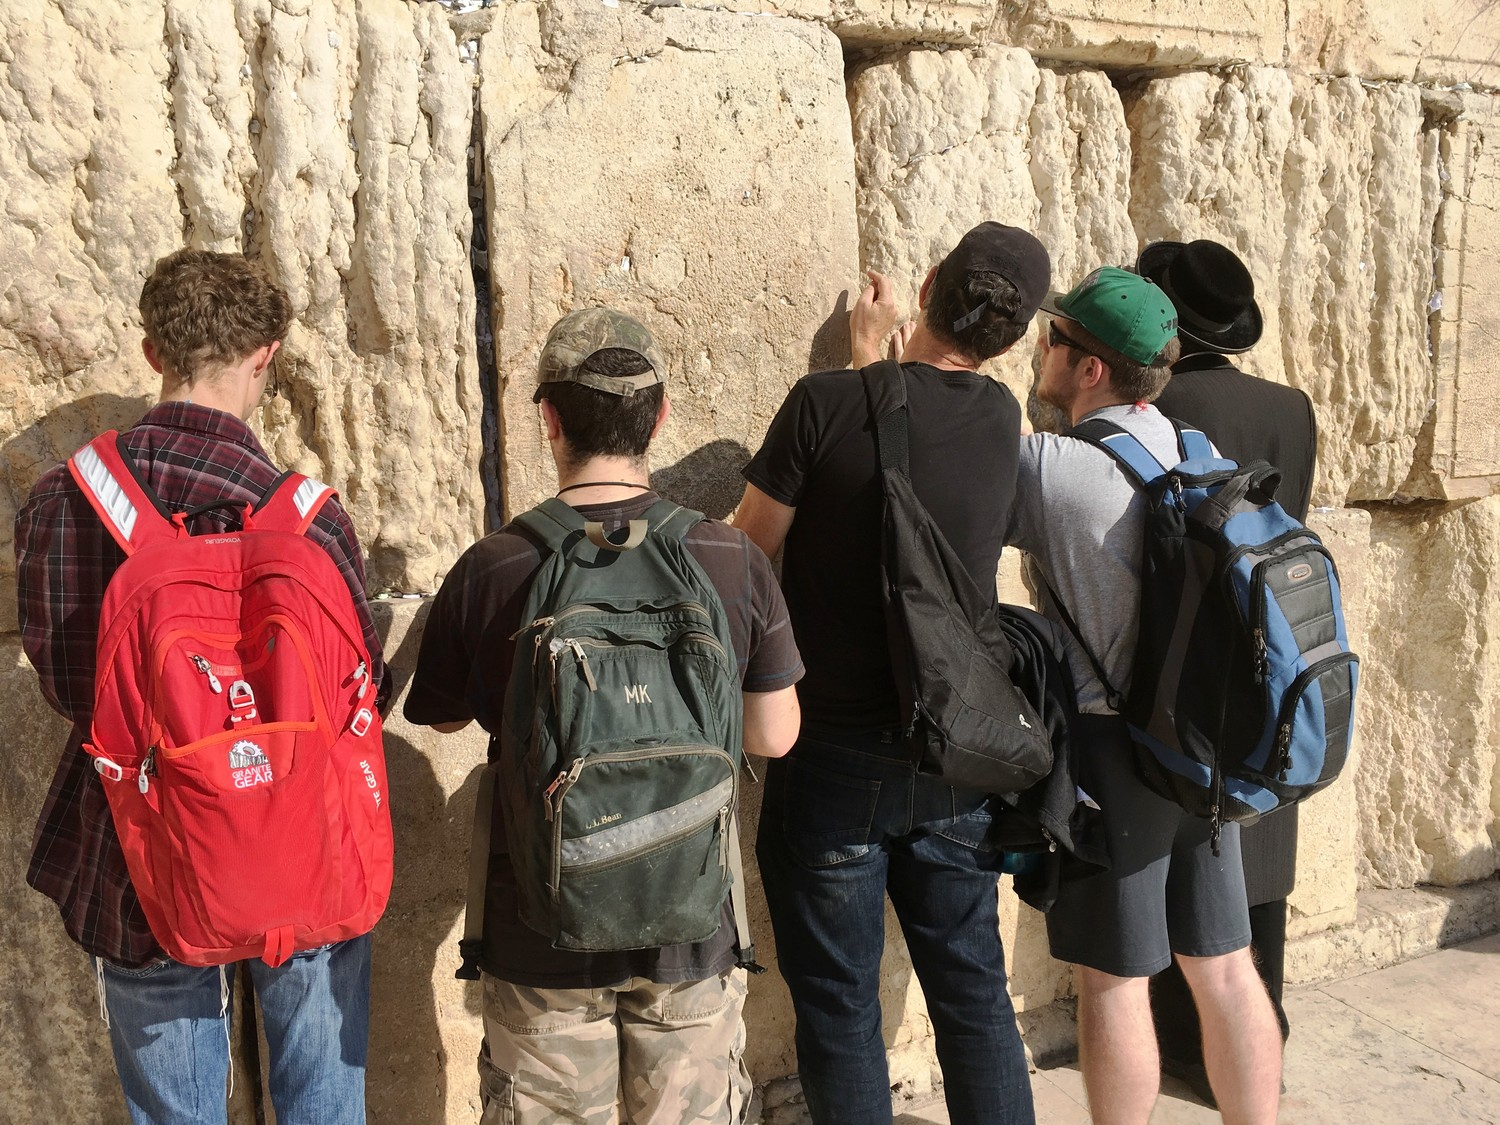 Kulanu Academy students will be able to tour Israel for at least 20 days and visit the historic sites, such as the Western Wall in Jerusalem.